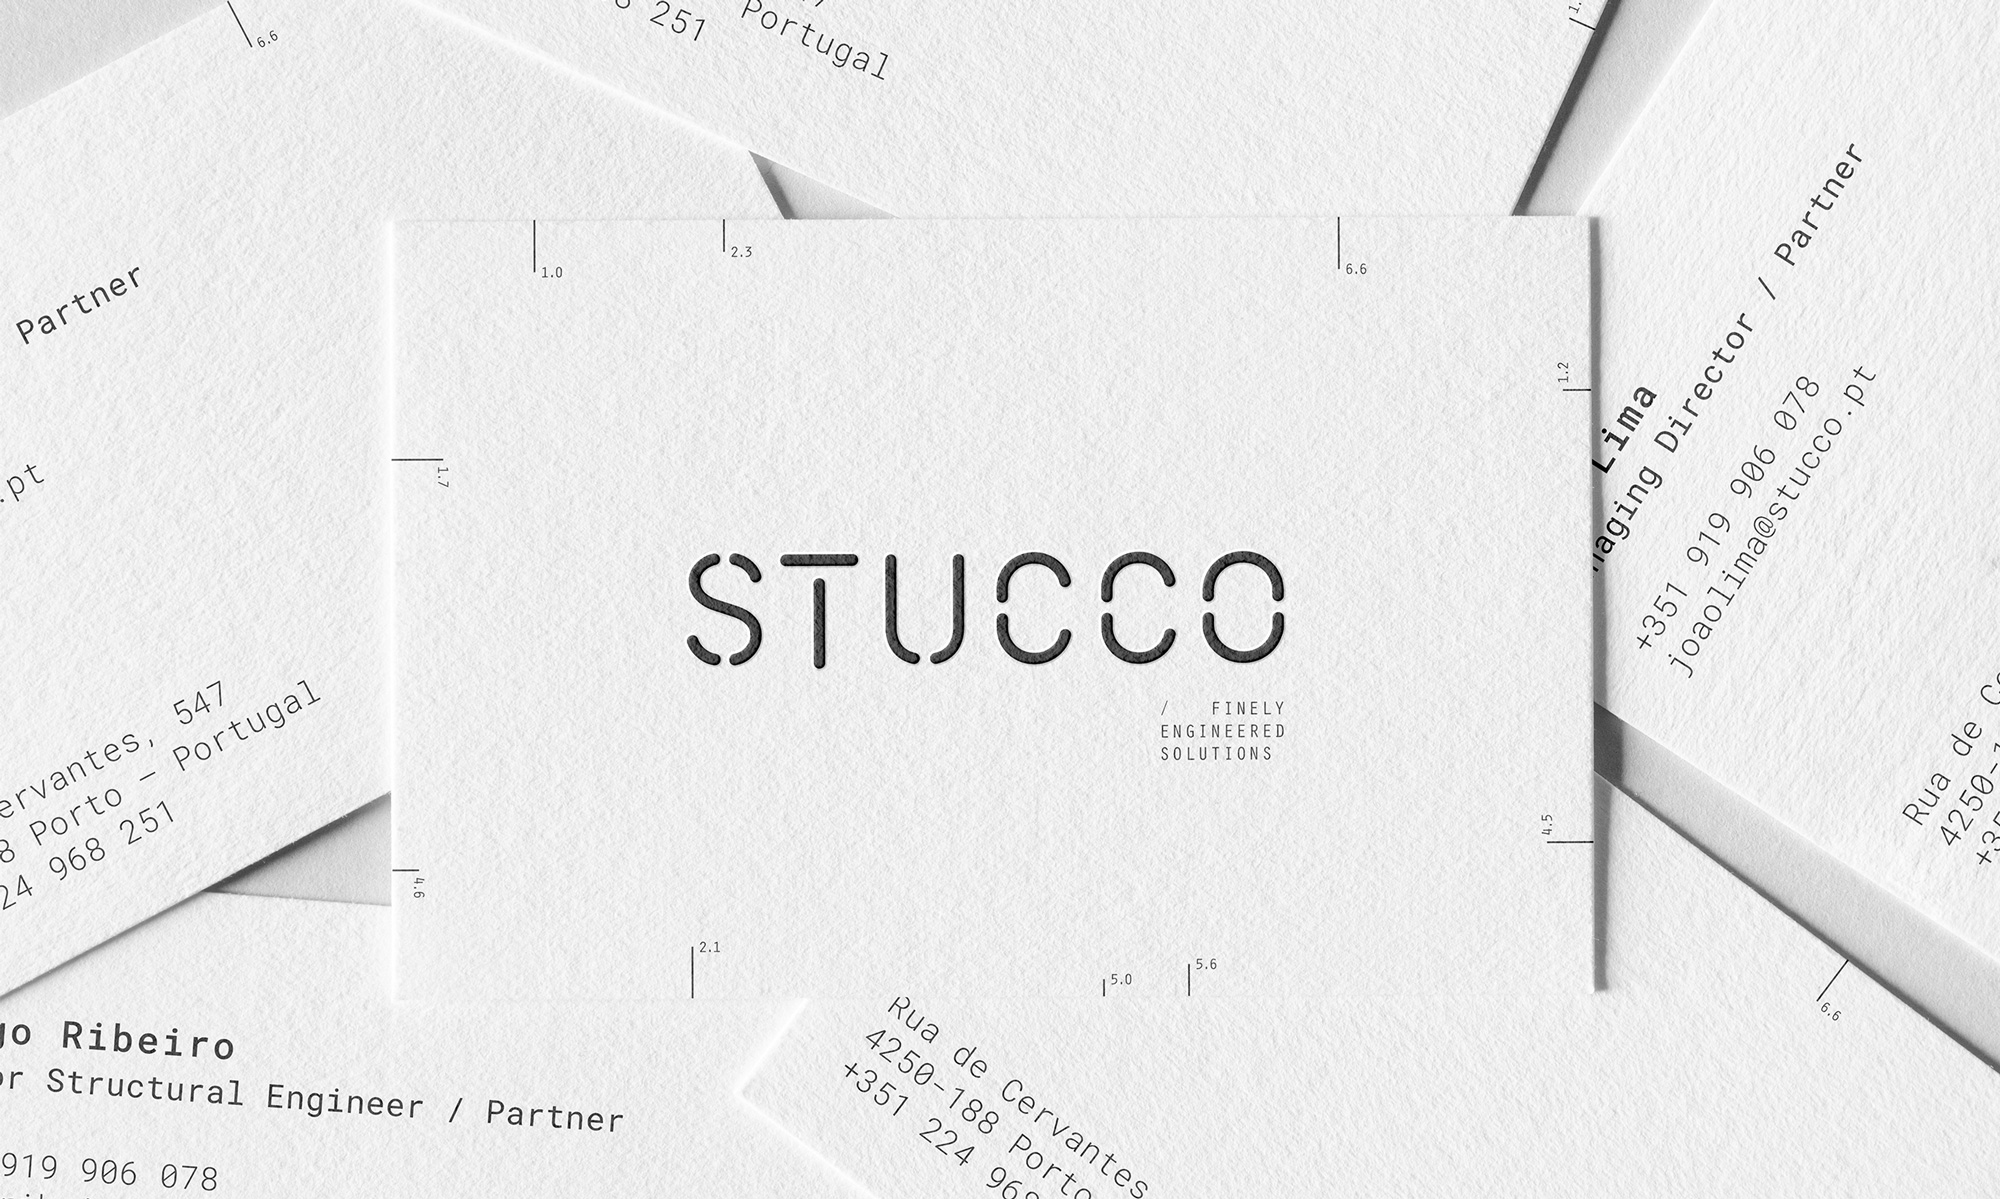 327 Creative Studio Design Brand Identity for Engineering Consulting Services Stucco